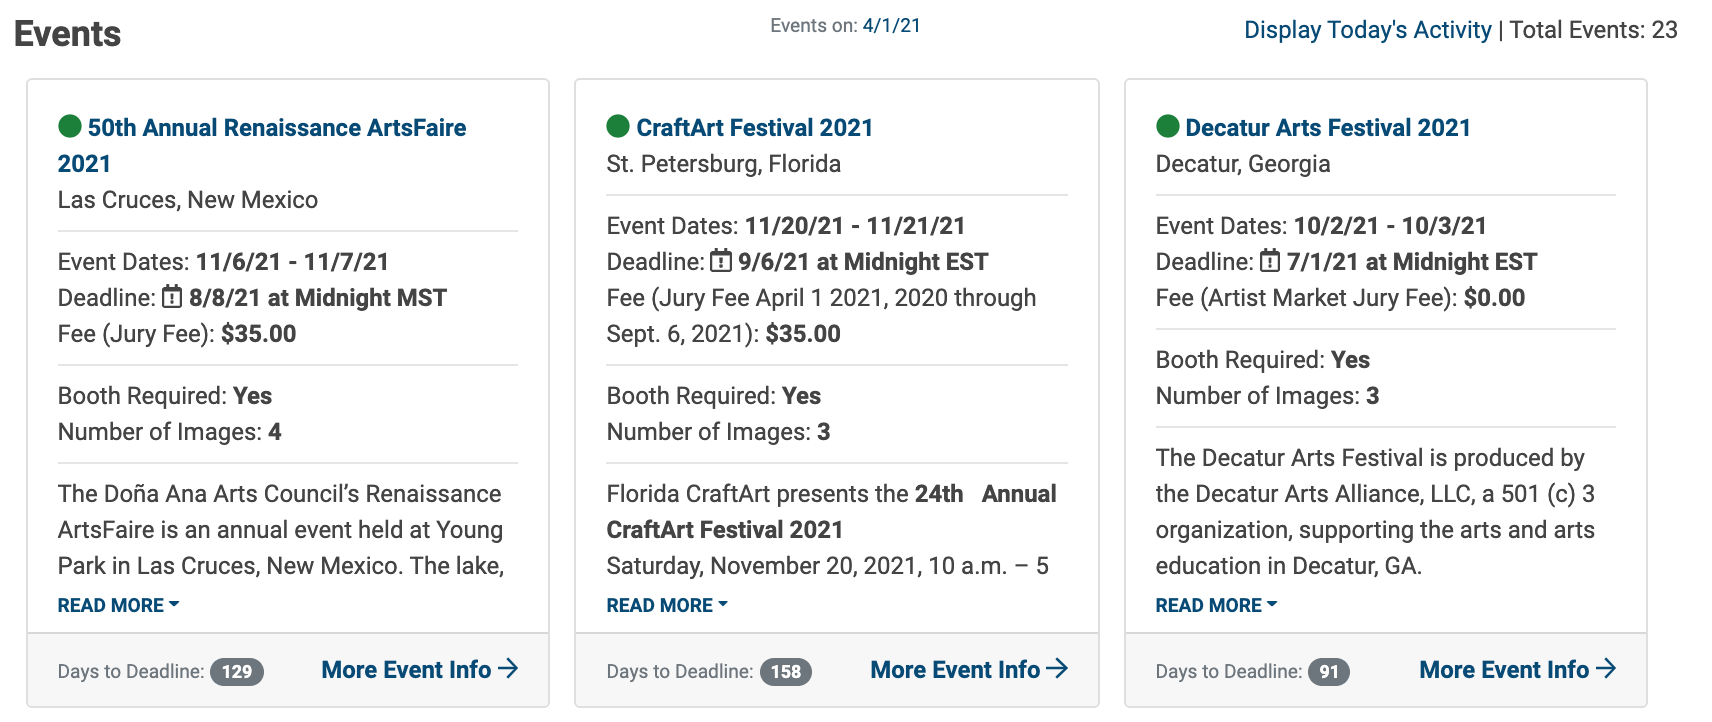 An image of the Event Cards below the Events Calendar. Three cards are shown.